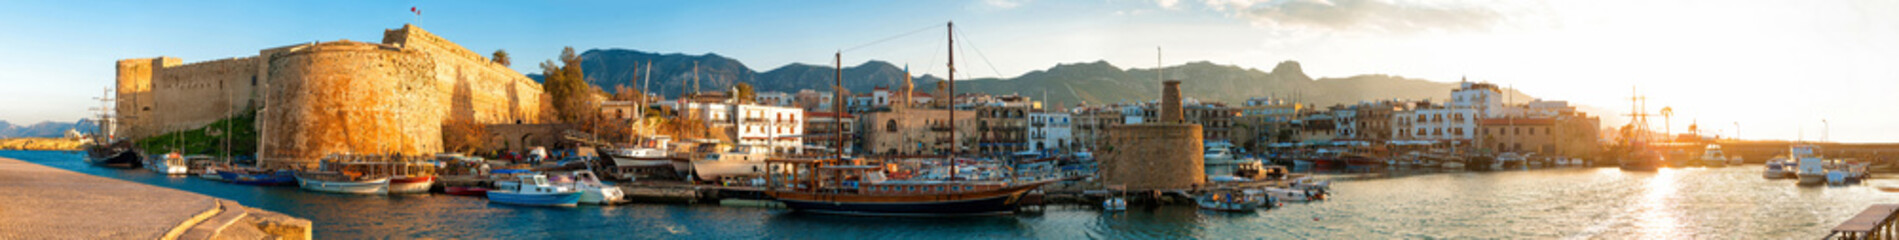 Deurstickers Cyprus Kyrenia harbour and Medieval castle, Cyprus.